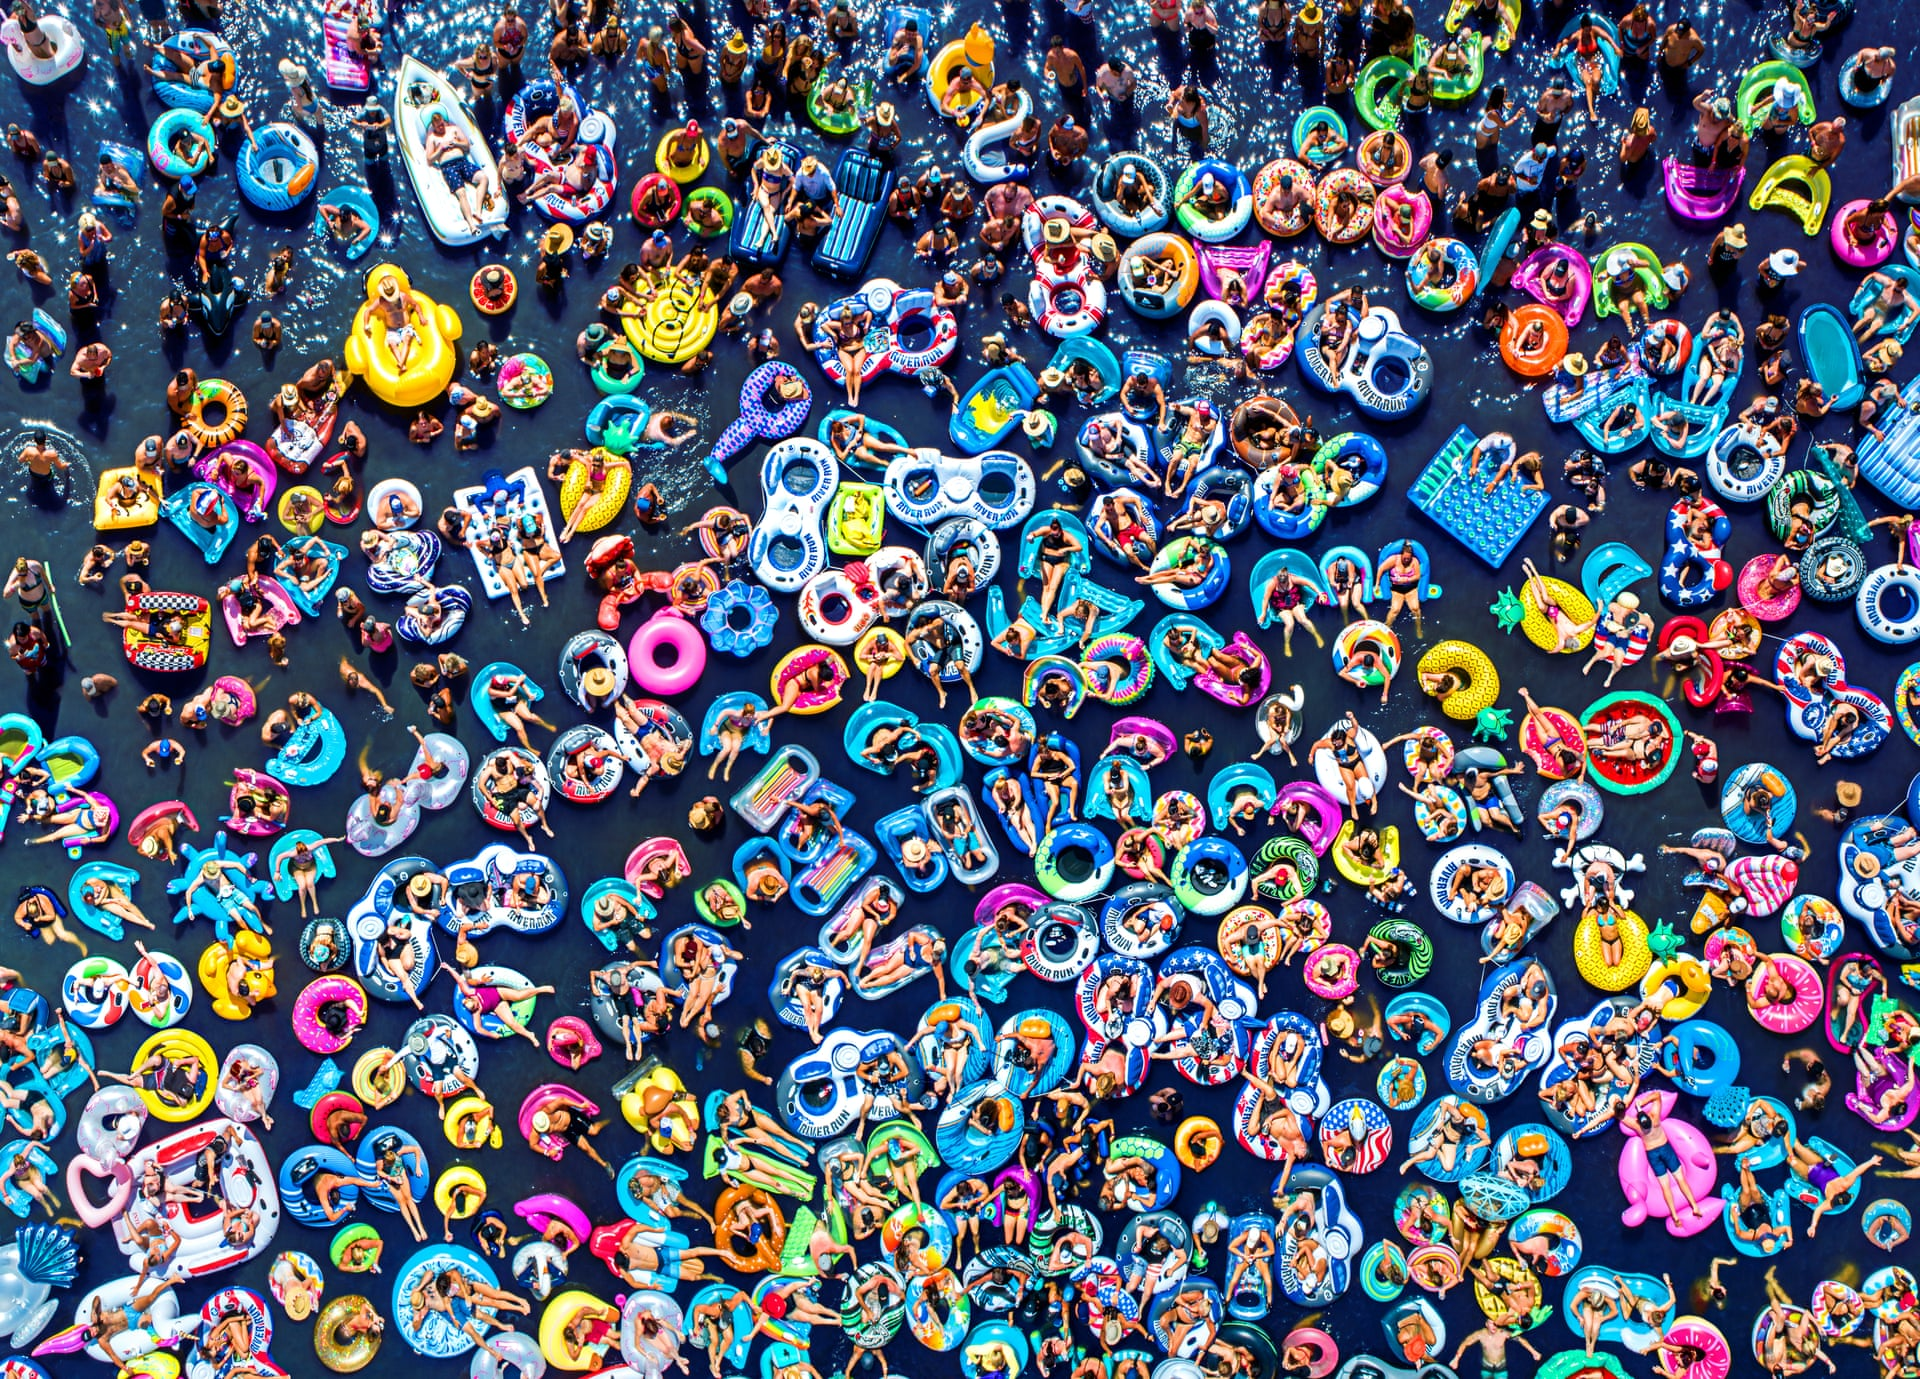 Floating People | People CommendedPeople in inner-tubes attend a concert on a floating stagePhotograph: Raf Willems/Drone Photography Awards 2021